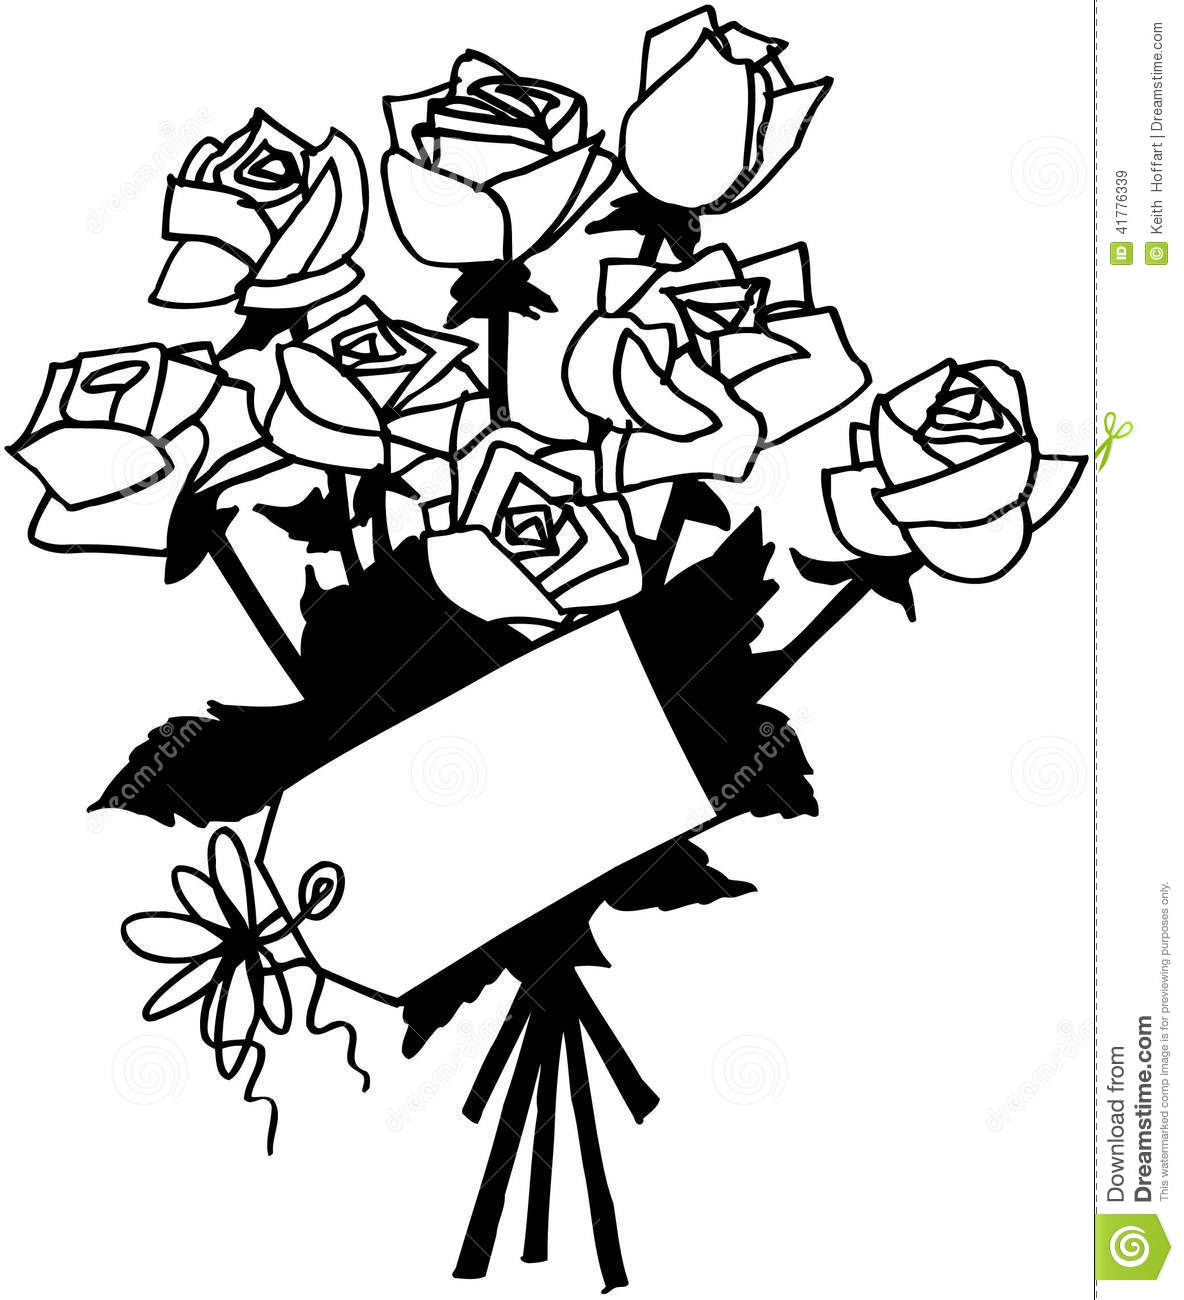 Roses Flowers Cartoon Vector Clipart Stock Vector - Image ...